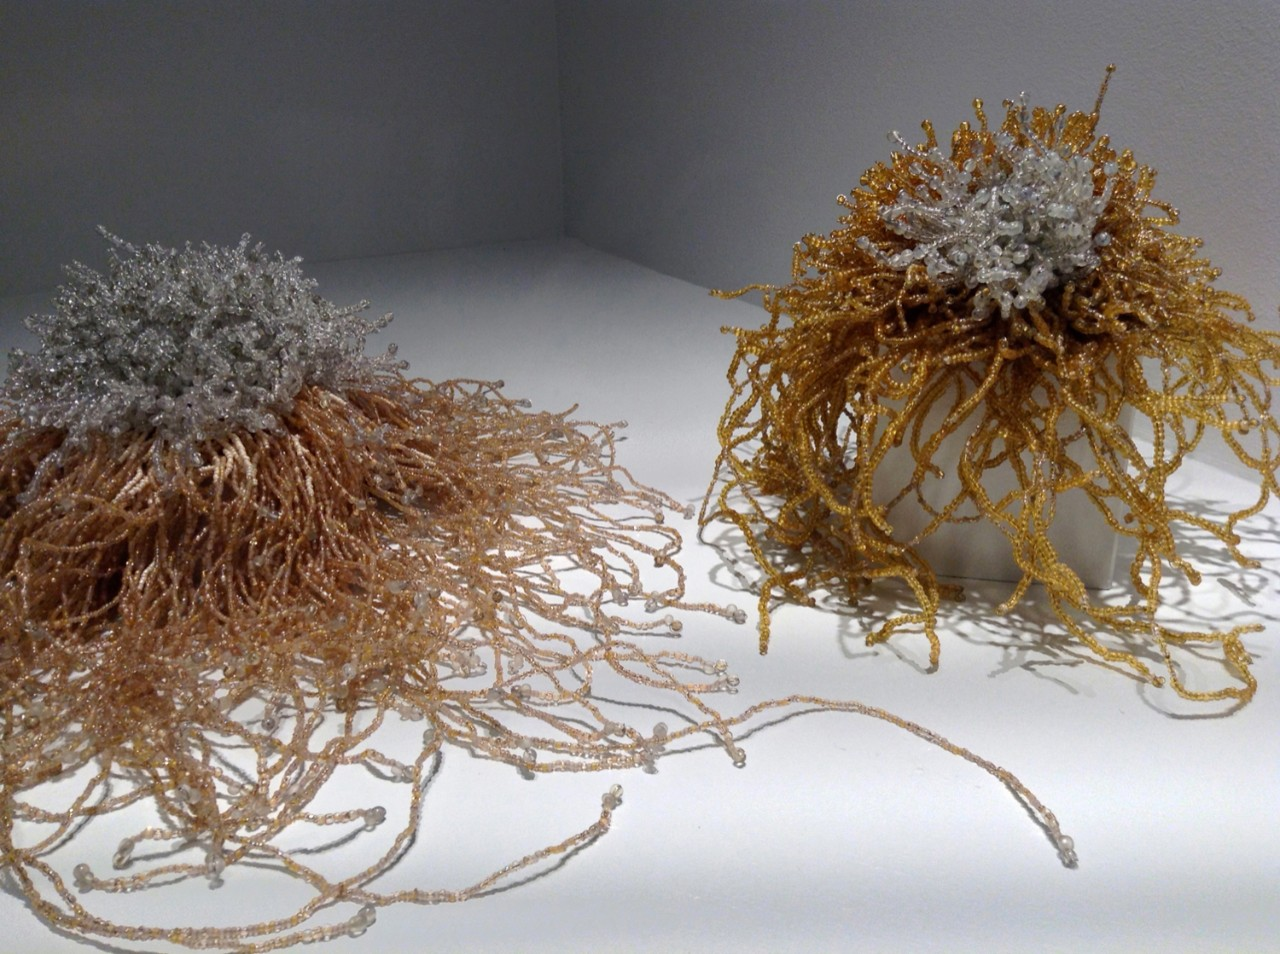 "4. Tolerances I & II, Glass, copper wire and plastic, 3.5"" x 17"" x 15"" and 4.5"" x 23"" x 28""     installation dimensions vary (2012)"